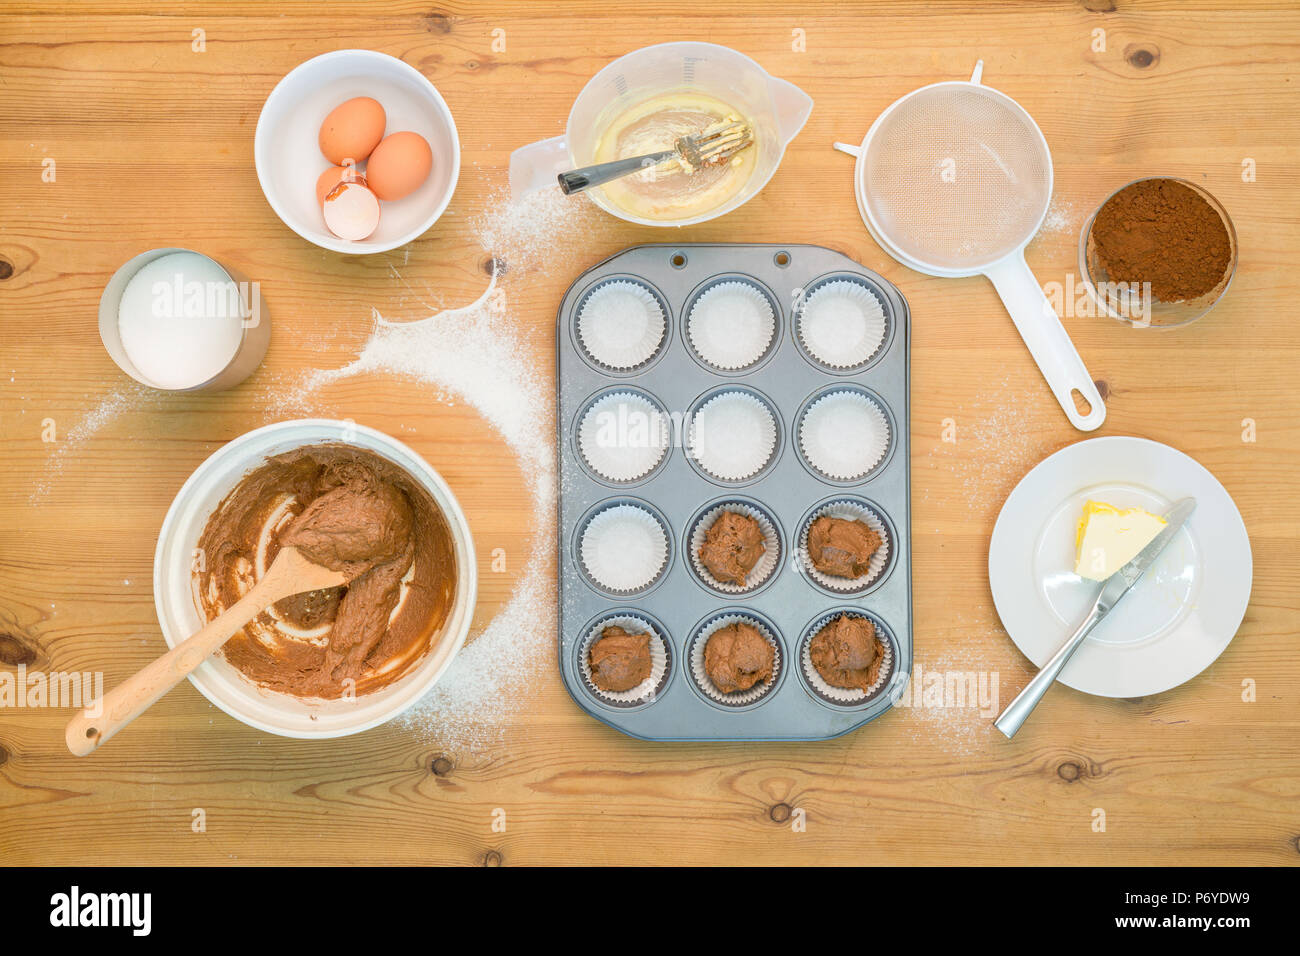 Overhead flat lay arrangement of Cup Cake making mixture and equipment on a kitchen table. - Stock Image